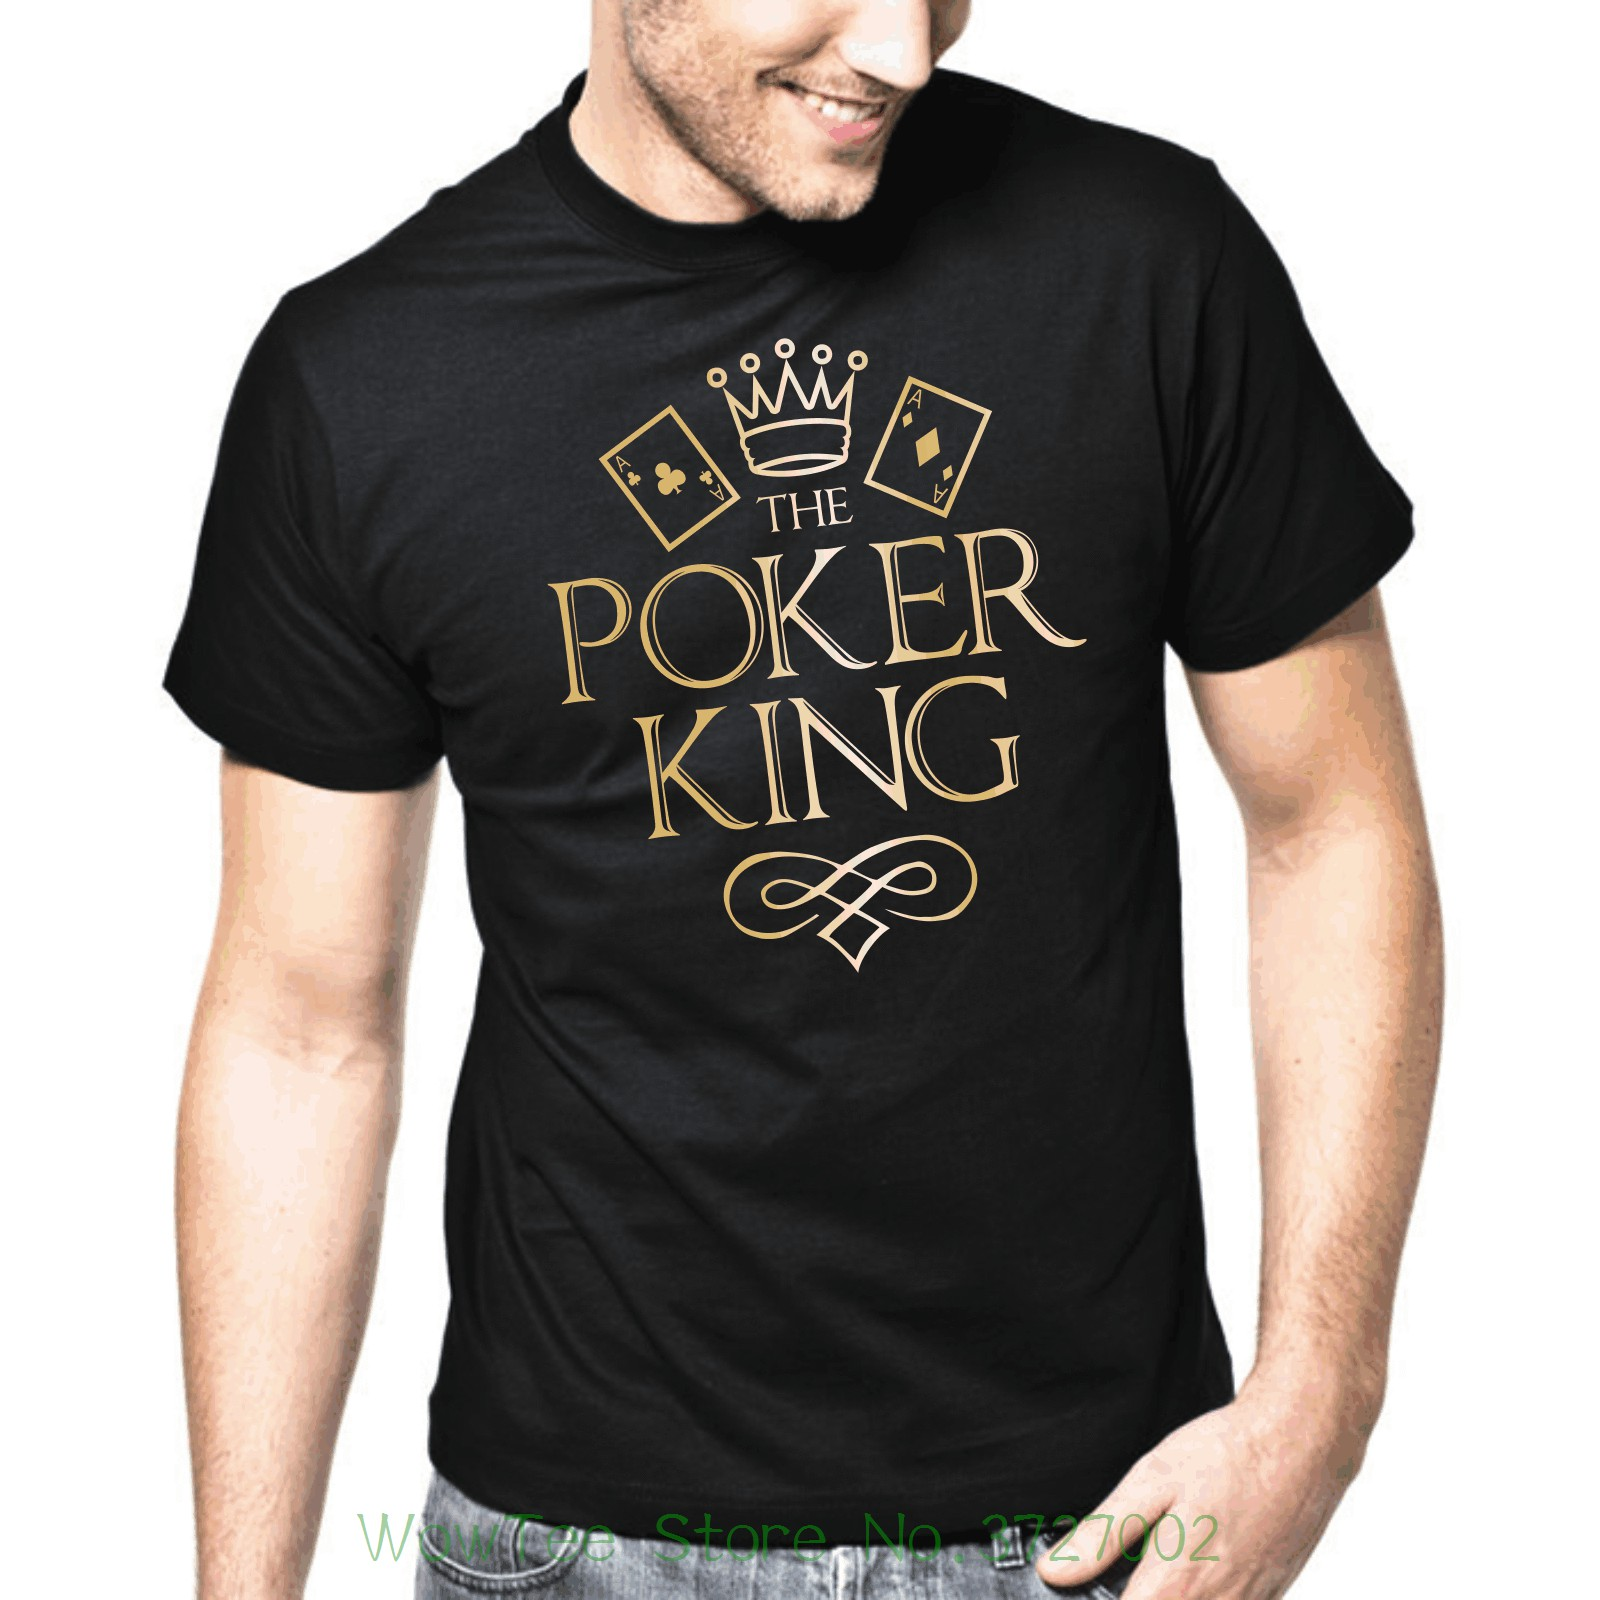 The Poker King  Texas Hold Em  Flush  Gold Metallic  S - Xxl T-shirt New 2018 Fashion Me ...